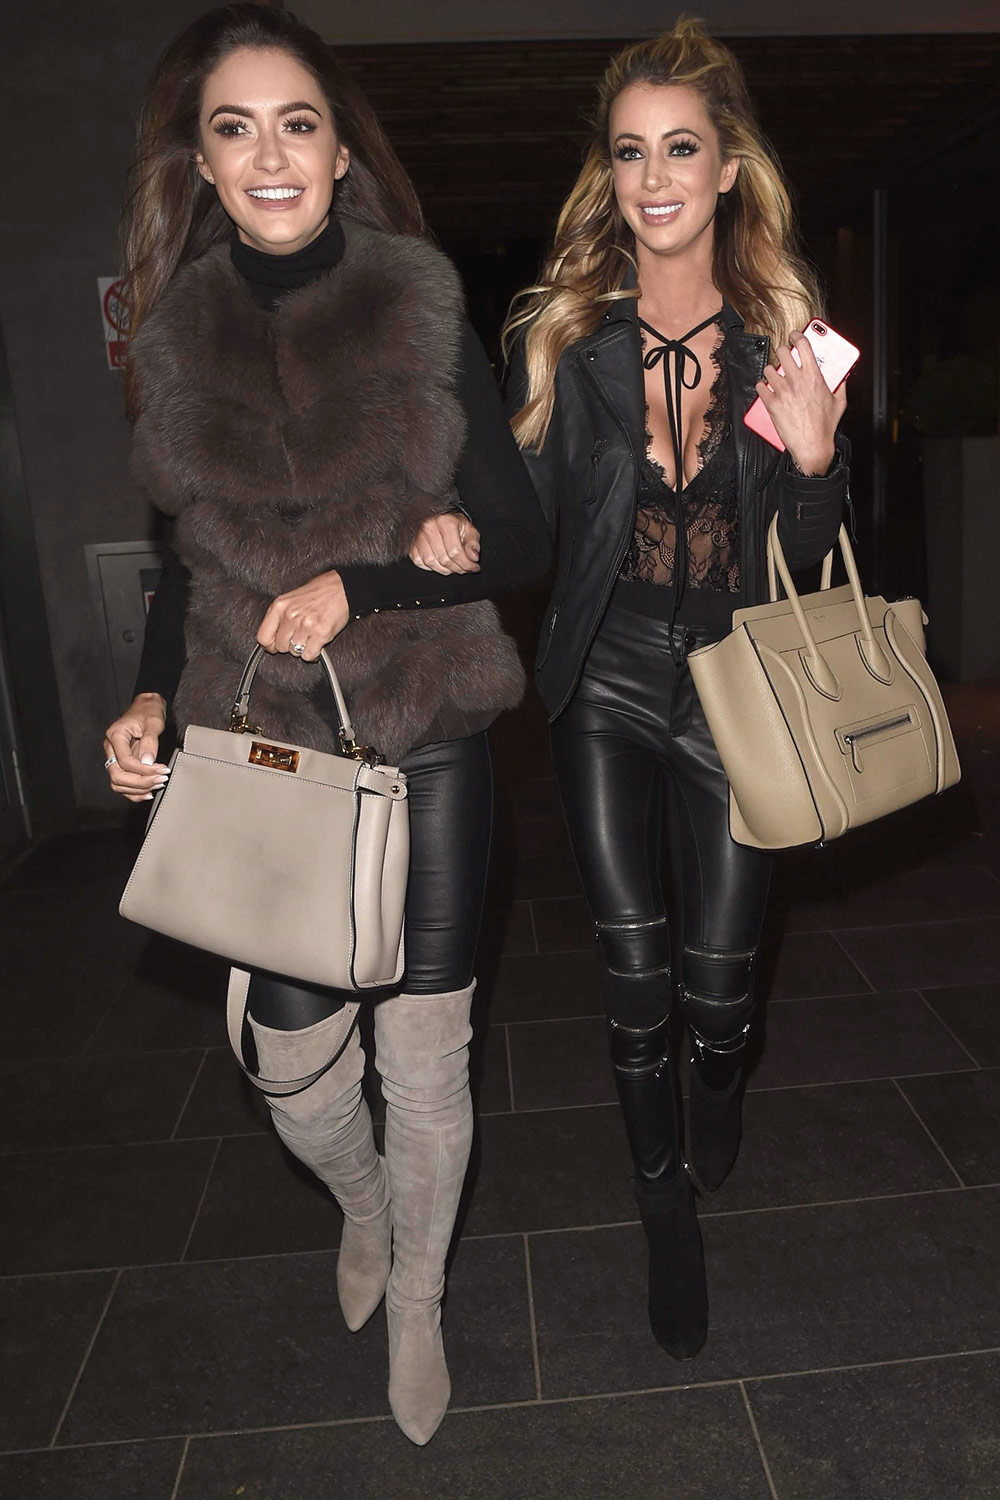 Olivia Attwood out in Manchester